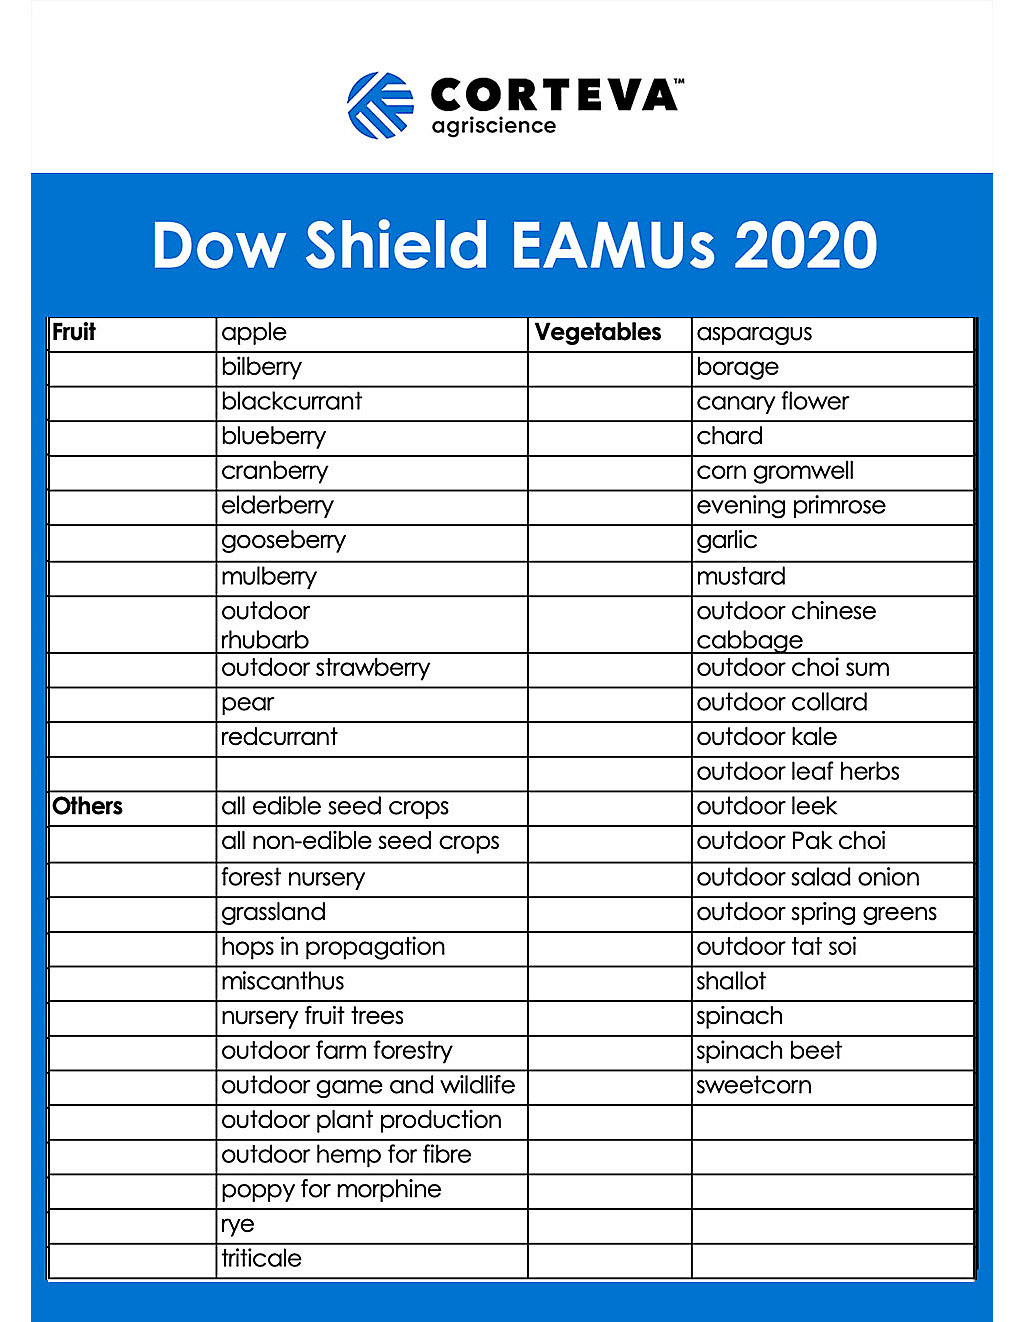 Dow shield table